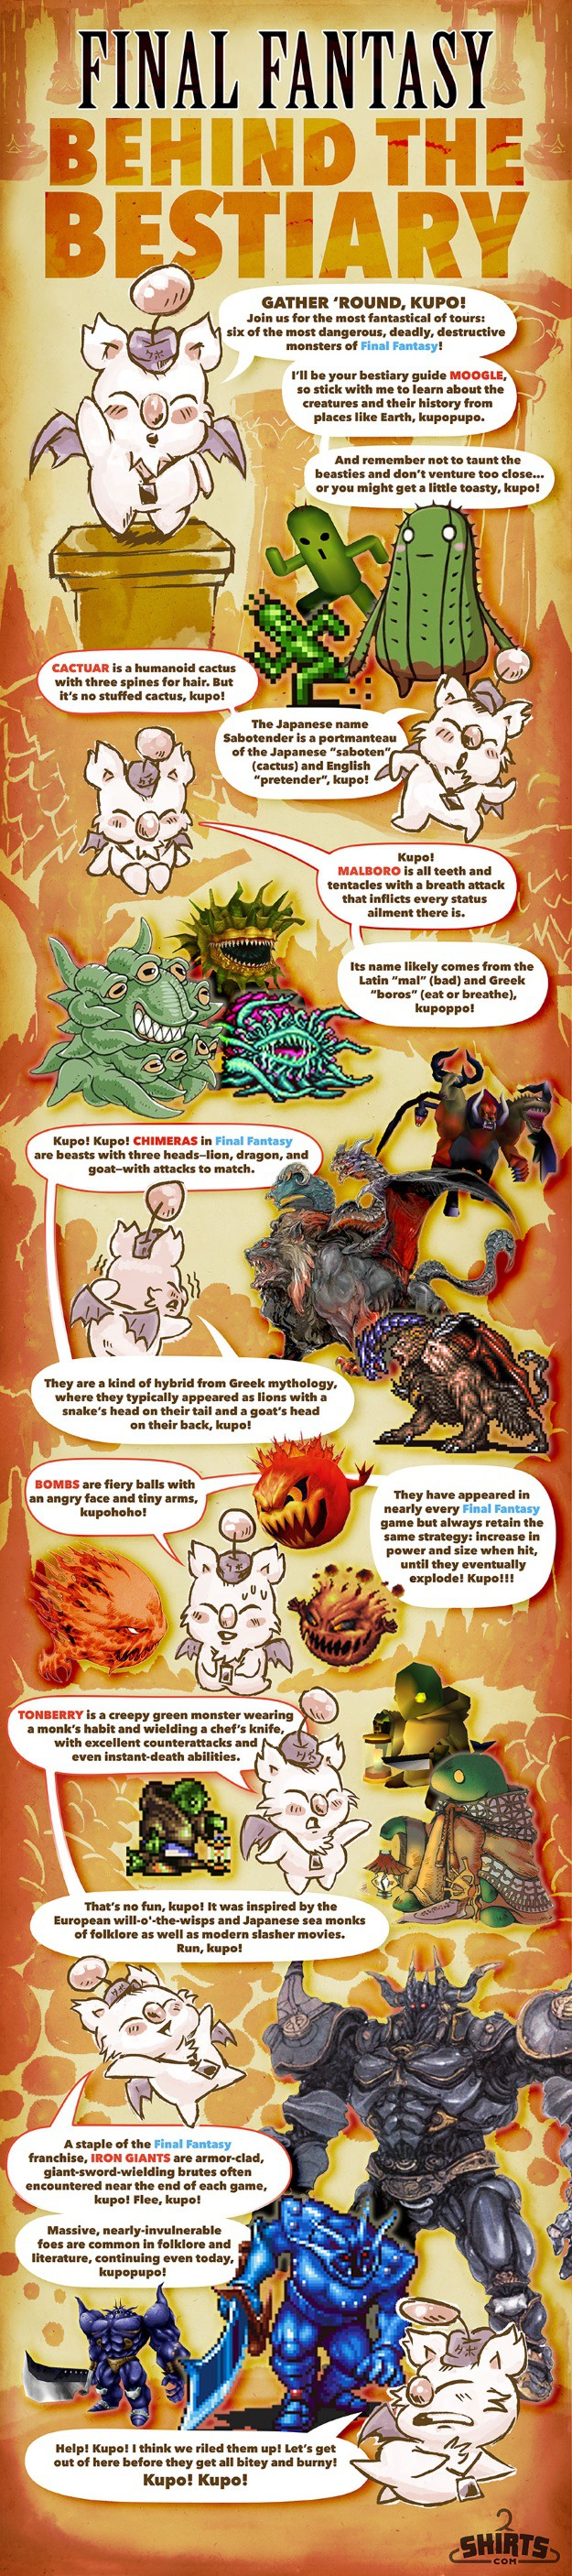 Final-Fantasy-Behind-the-Bestiary (1)